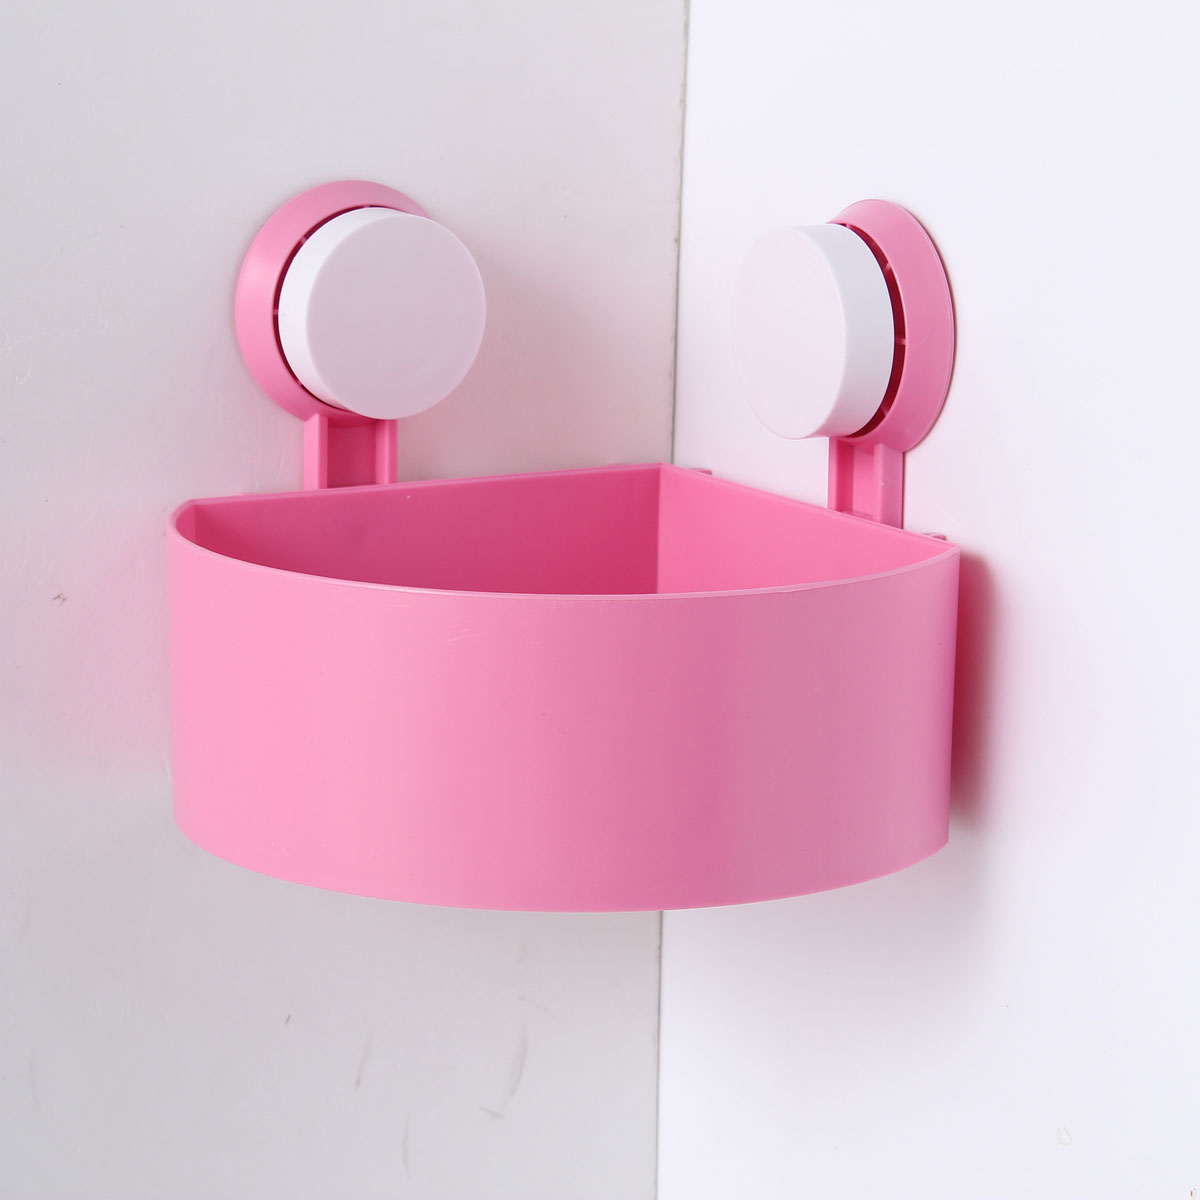 Bathroom Accessories With Suction Cups plastic bathroom wall corner shelf suction cup rack storage holder